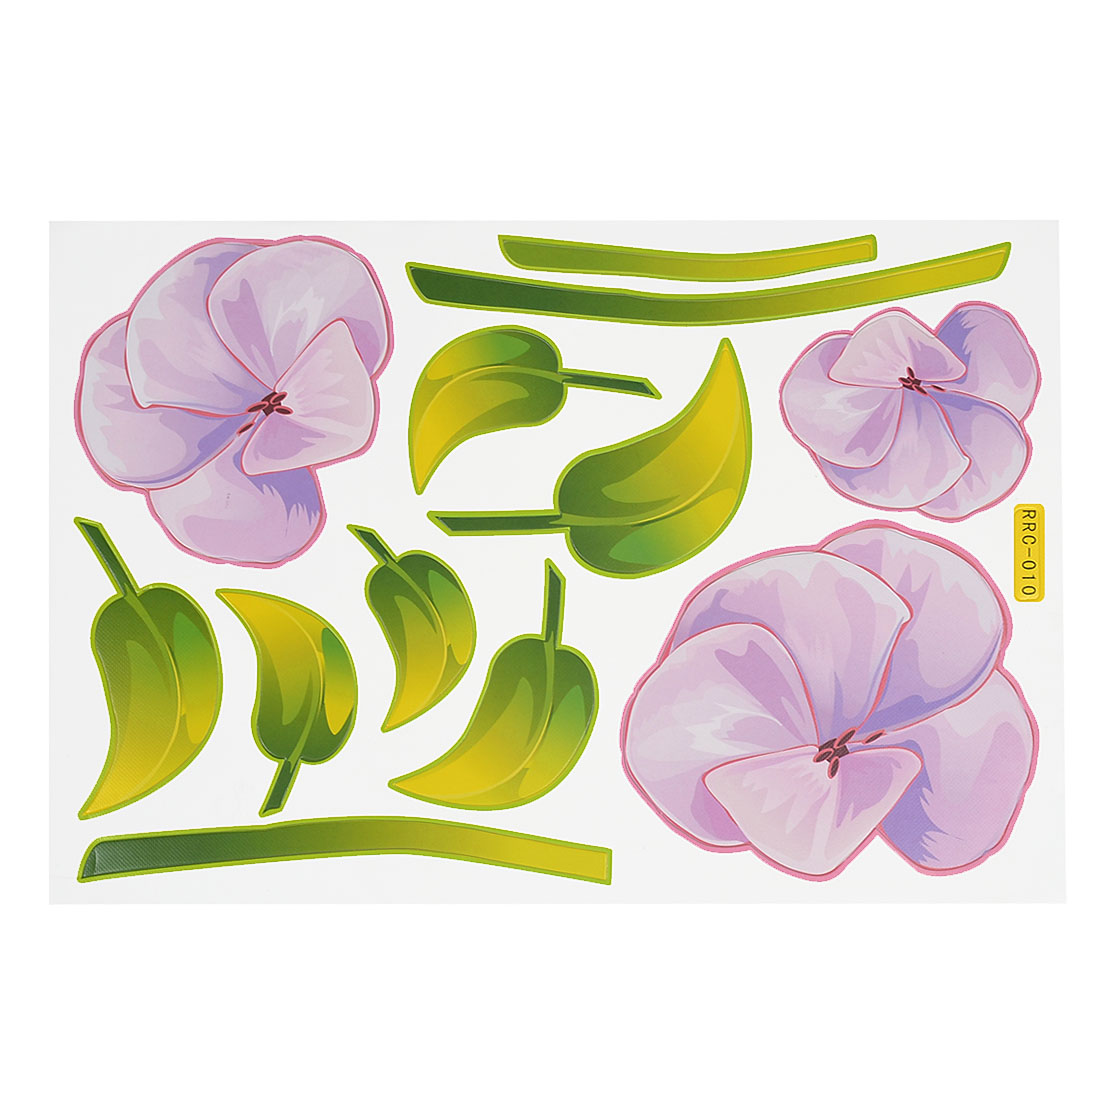 Green Light Purple Flower Leaf Print Refrigerator Wall DIY Sticker Decals Decor 12 in 1